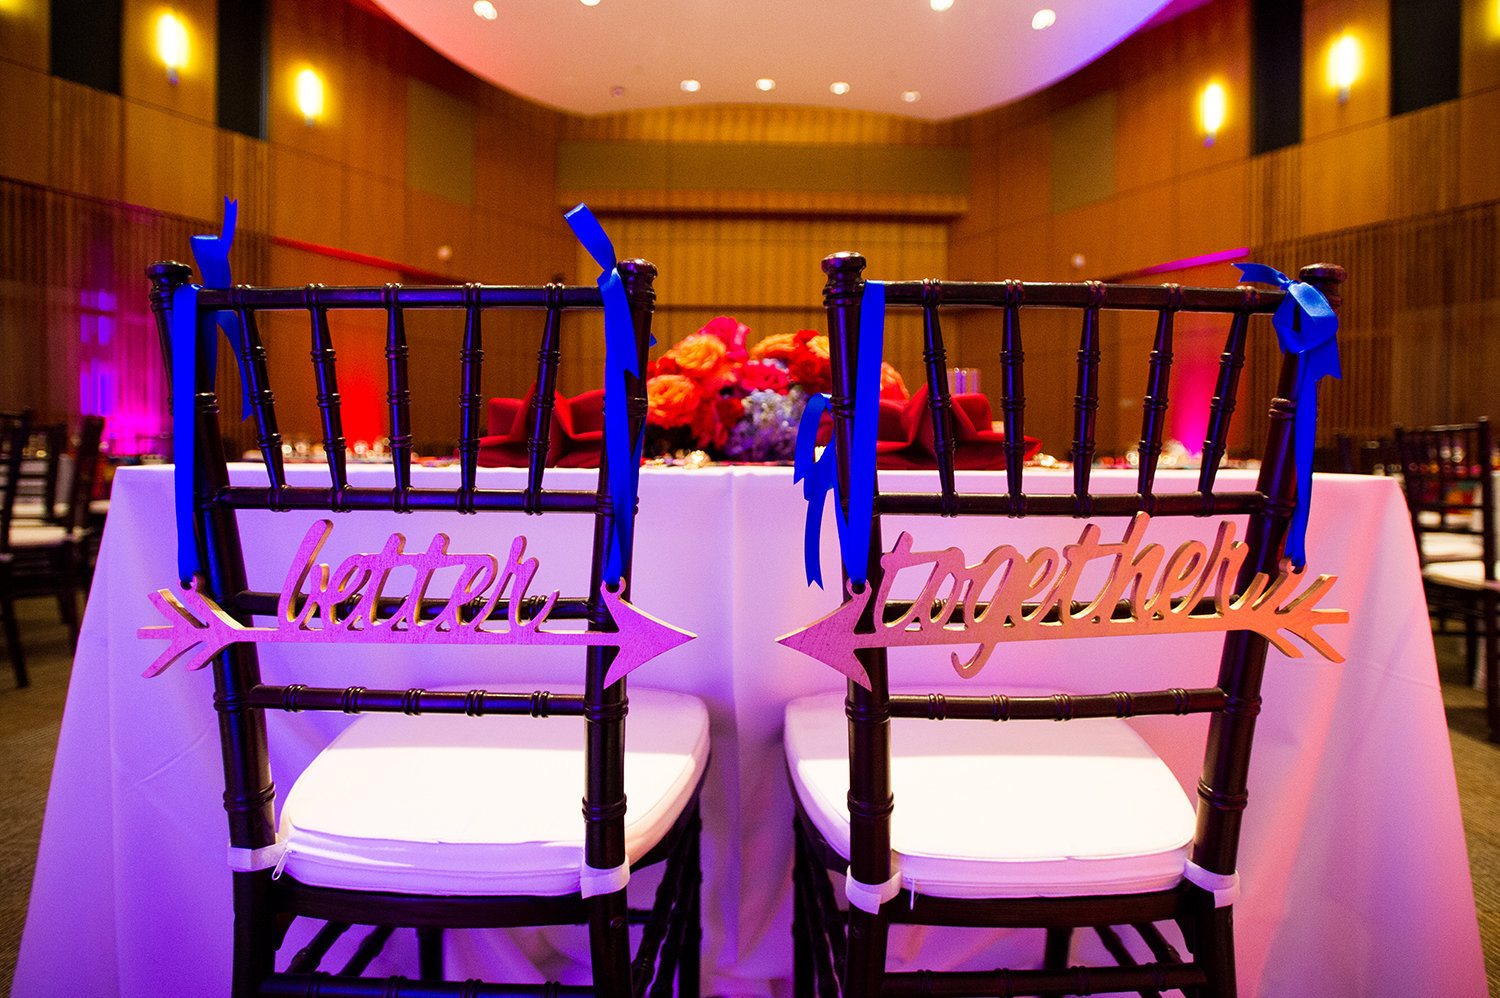 Cute chair signs for the bride and groom at an Indian wedding reception